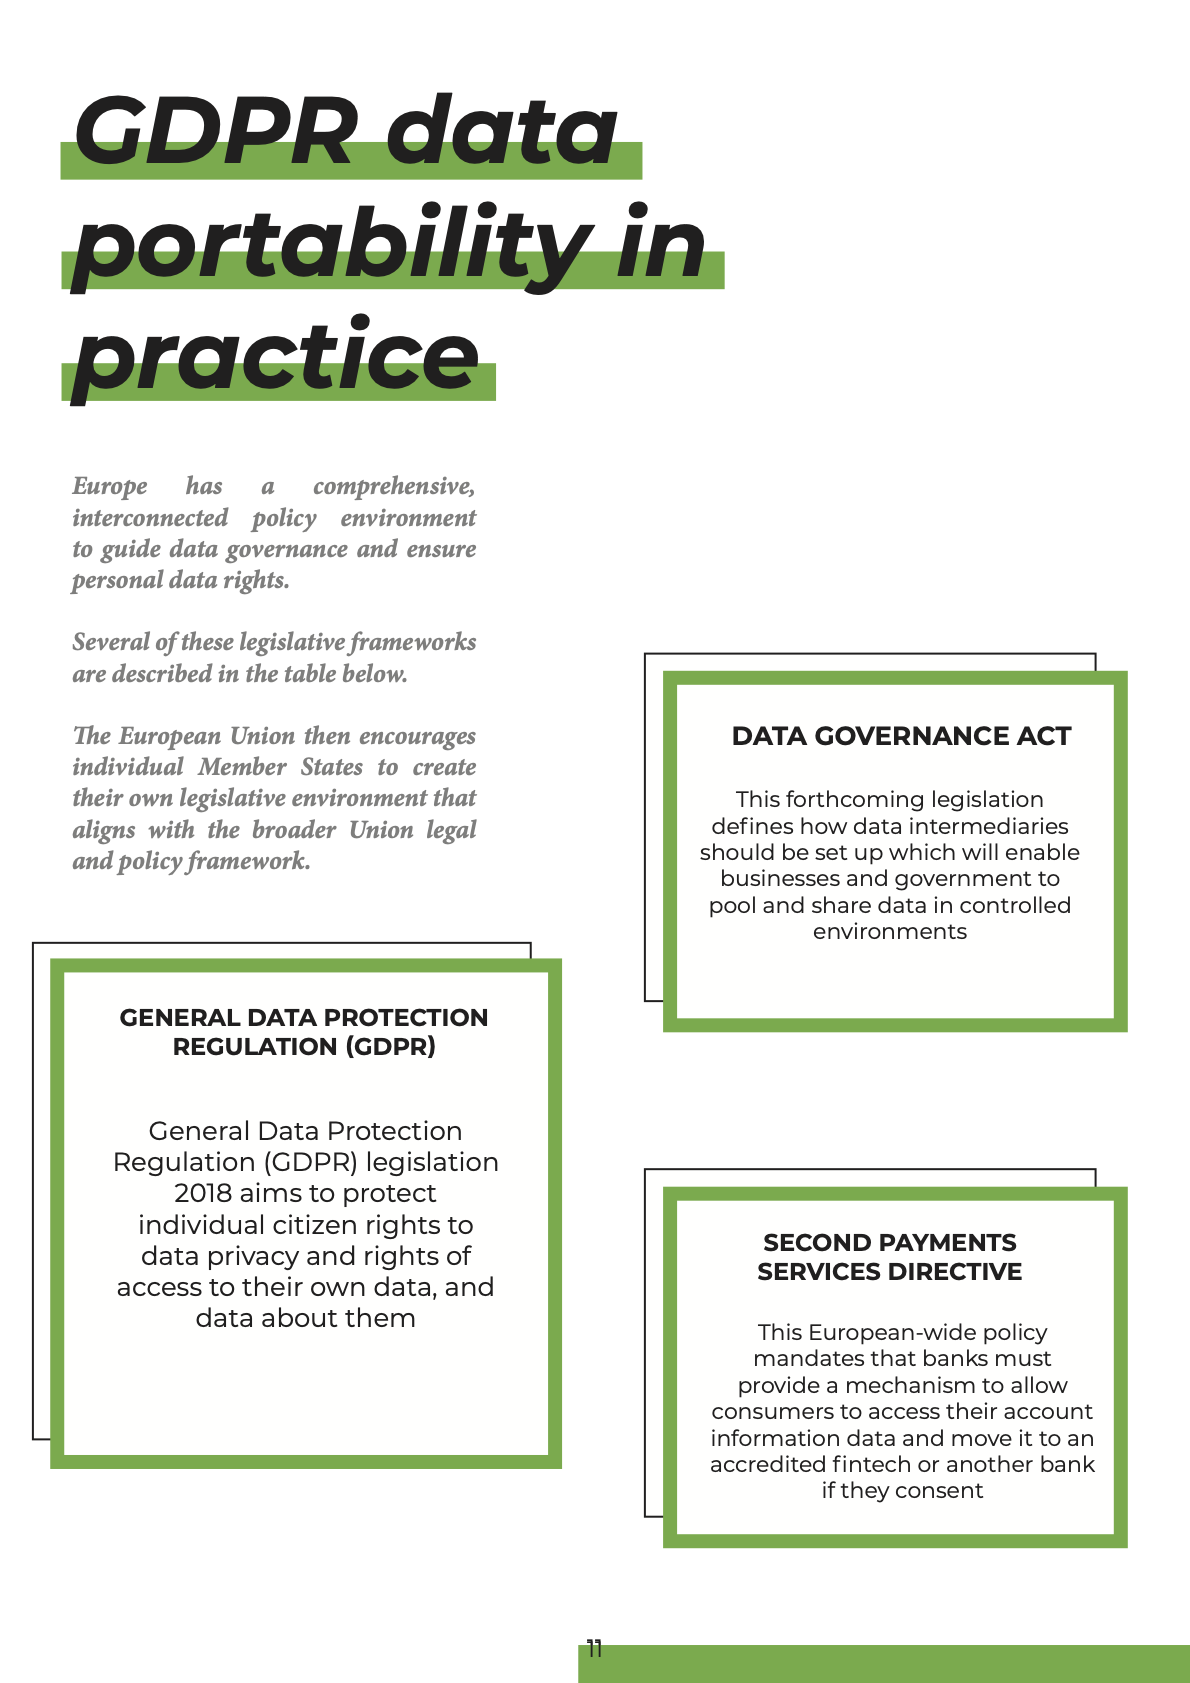 Image of the 'GDPR data portability in practice' part of the GDPR Report